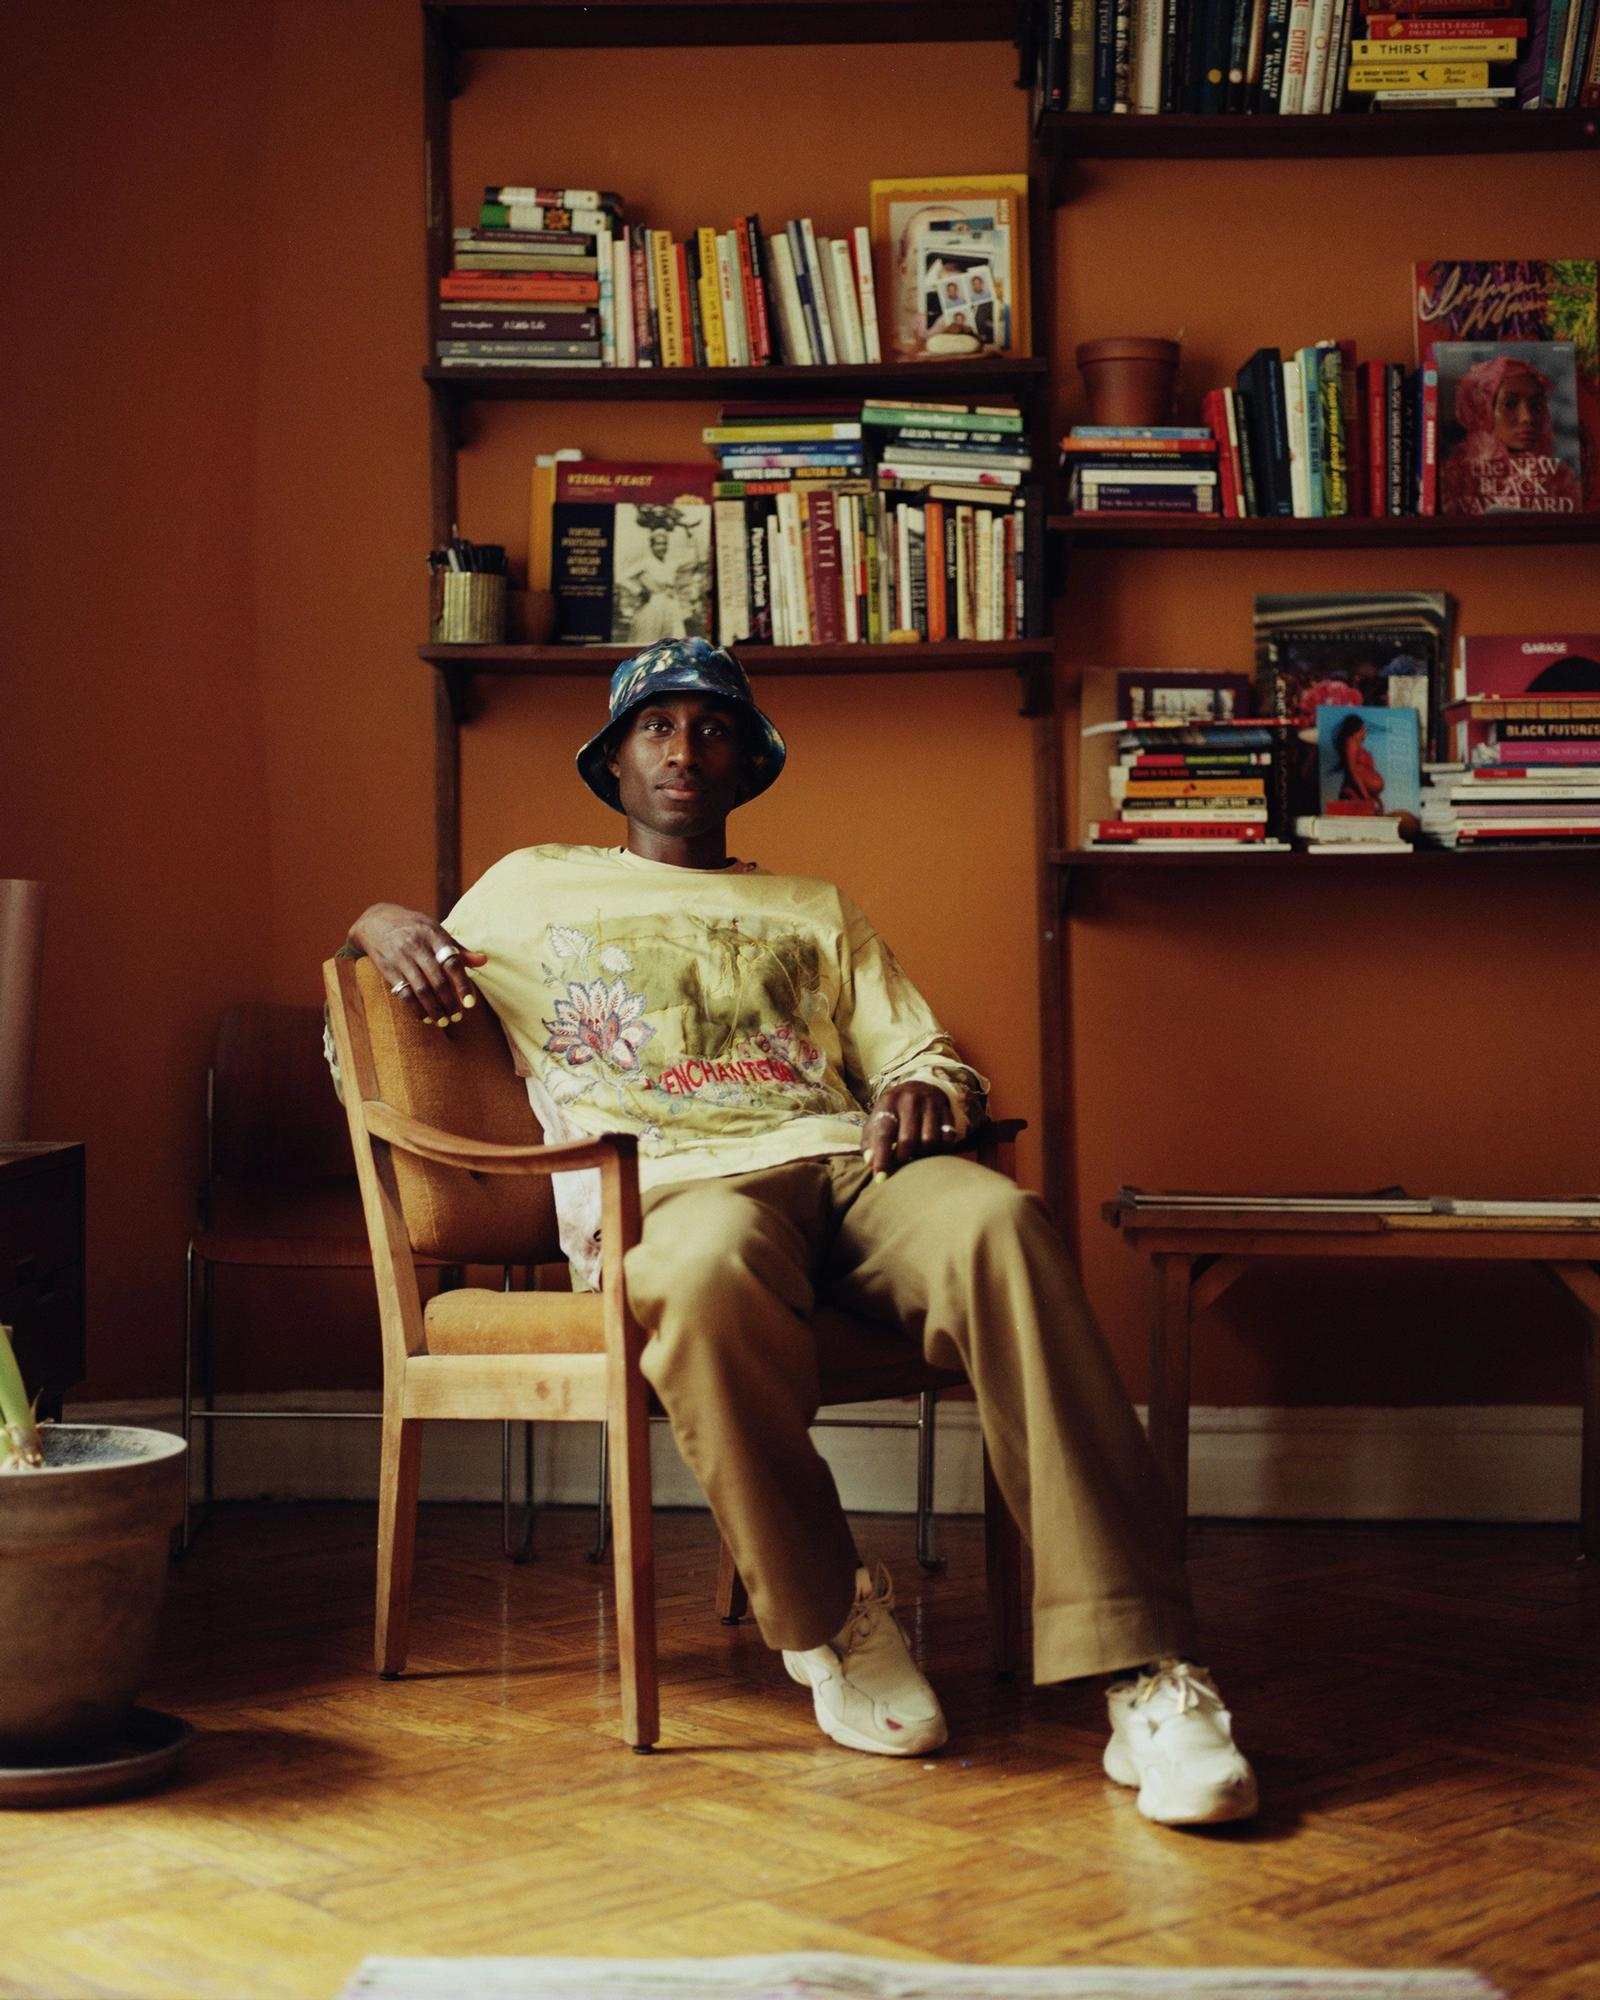 Devonn Francis sitting in front of bookshelves, wearing tan clothing and a blue bucket hat.